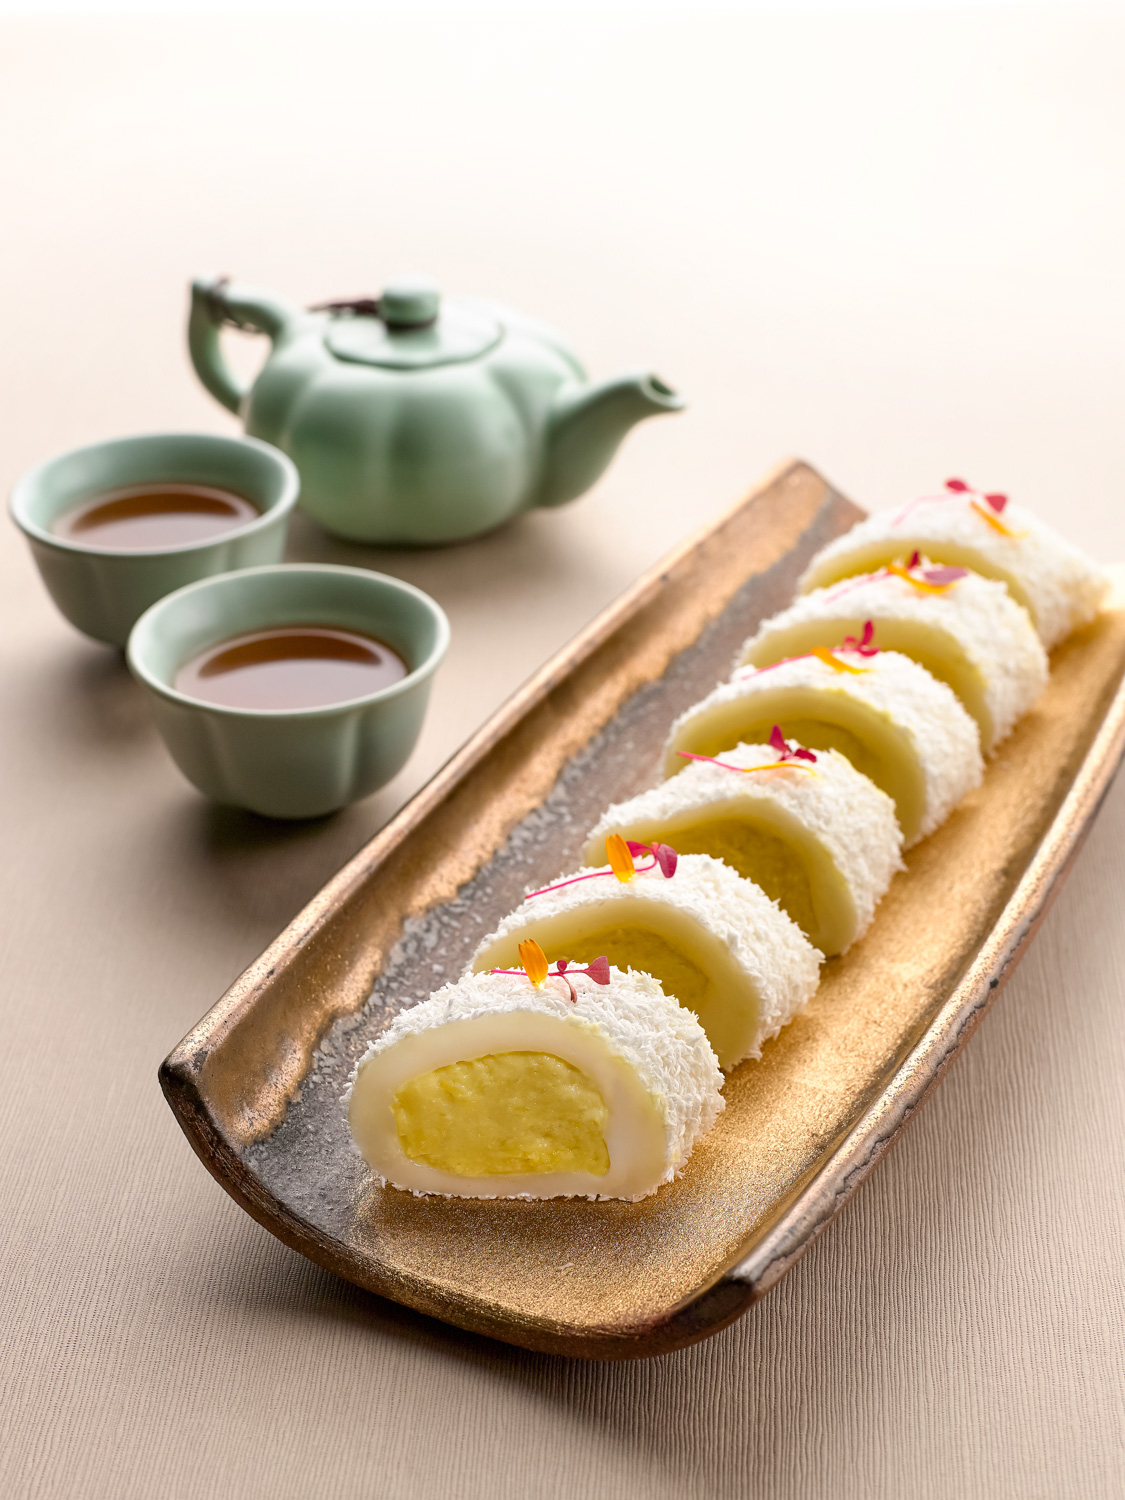 Chilled Glutinous Rice Rolls with Mao Shan Wang Durian Paste (猫山榴莲米滋卷)